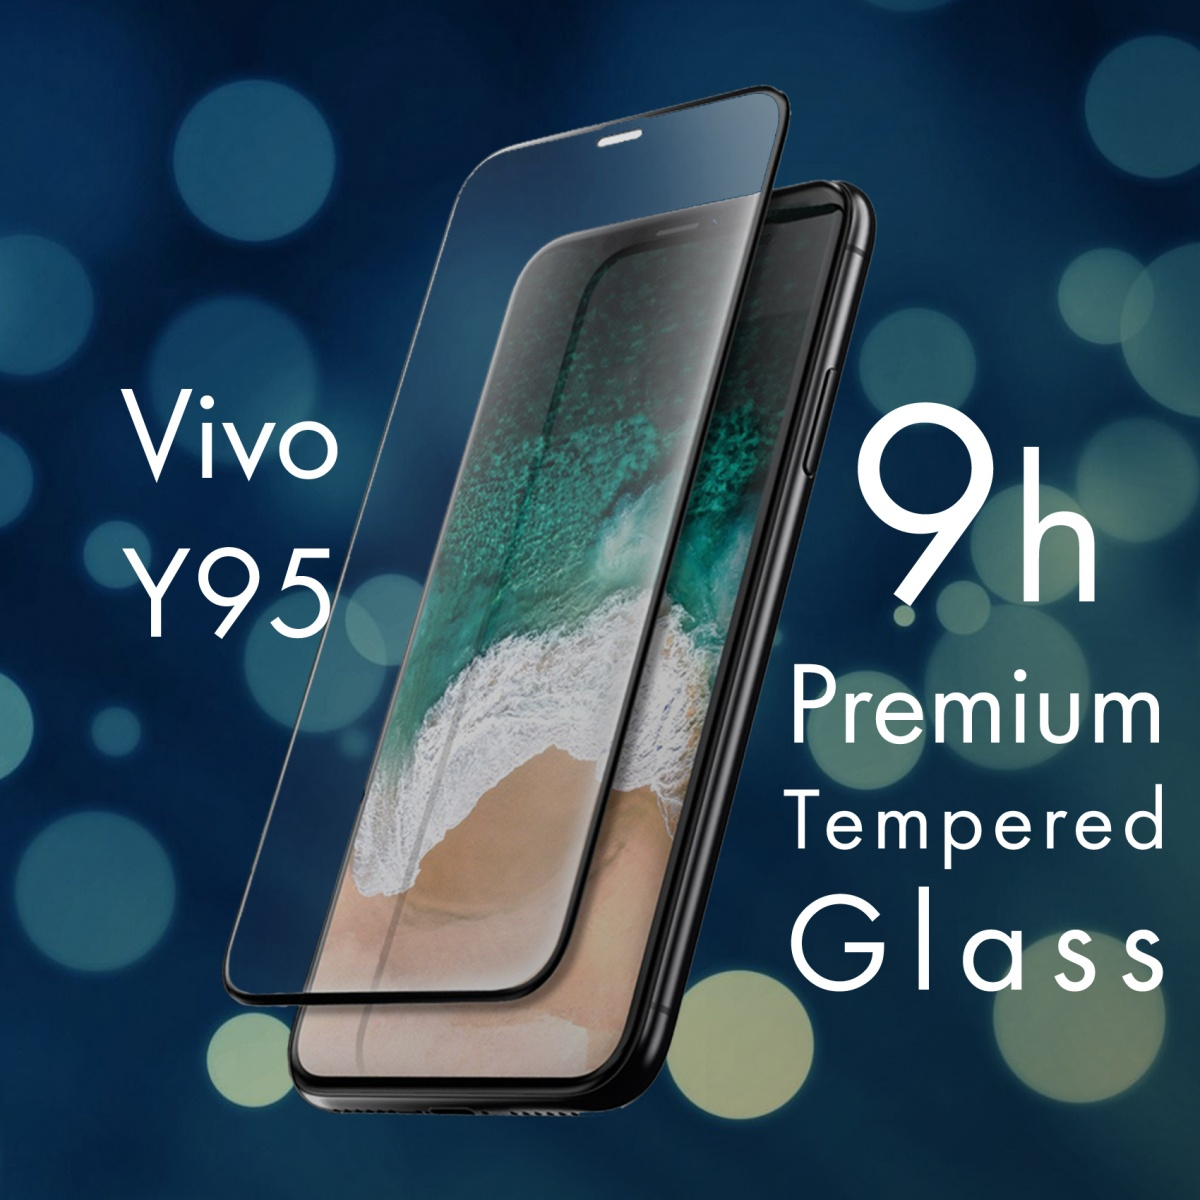 FOR SKU Vivo Y95 Full Screen Tempered Glass With Black Lining